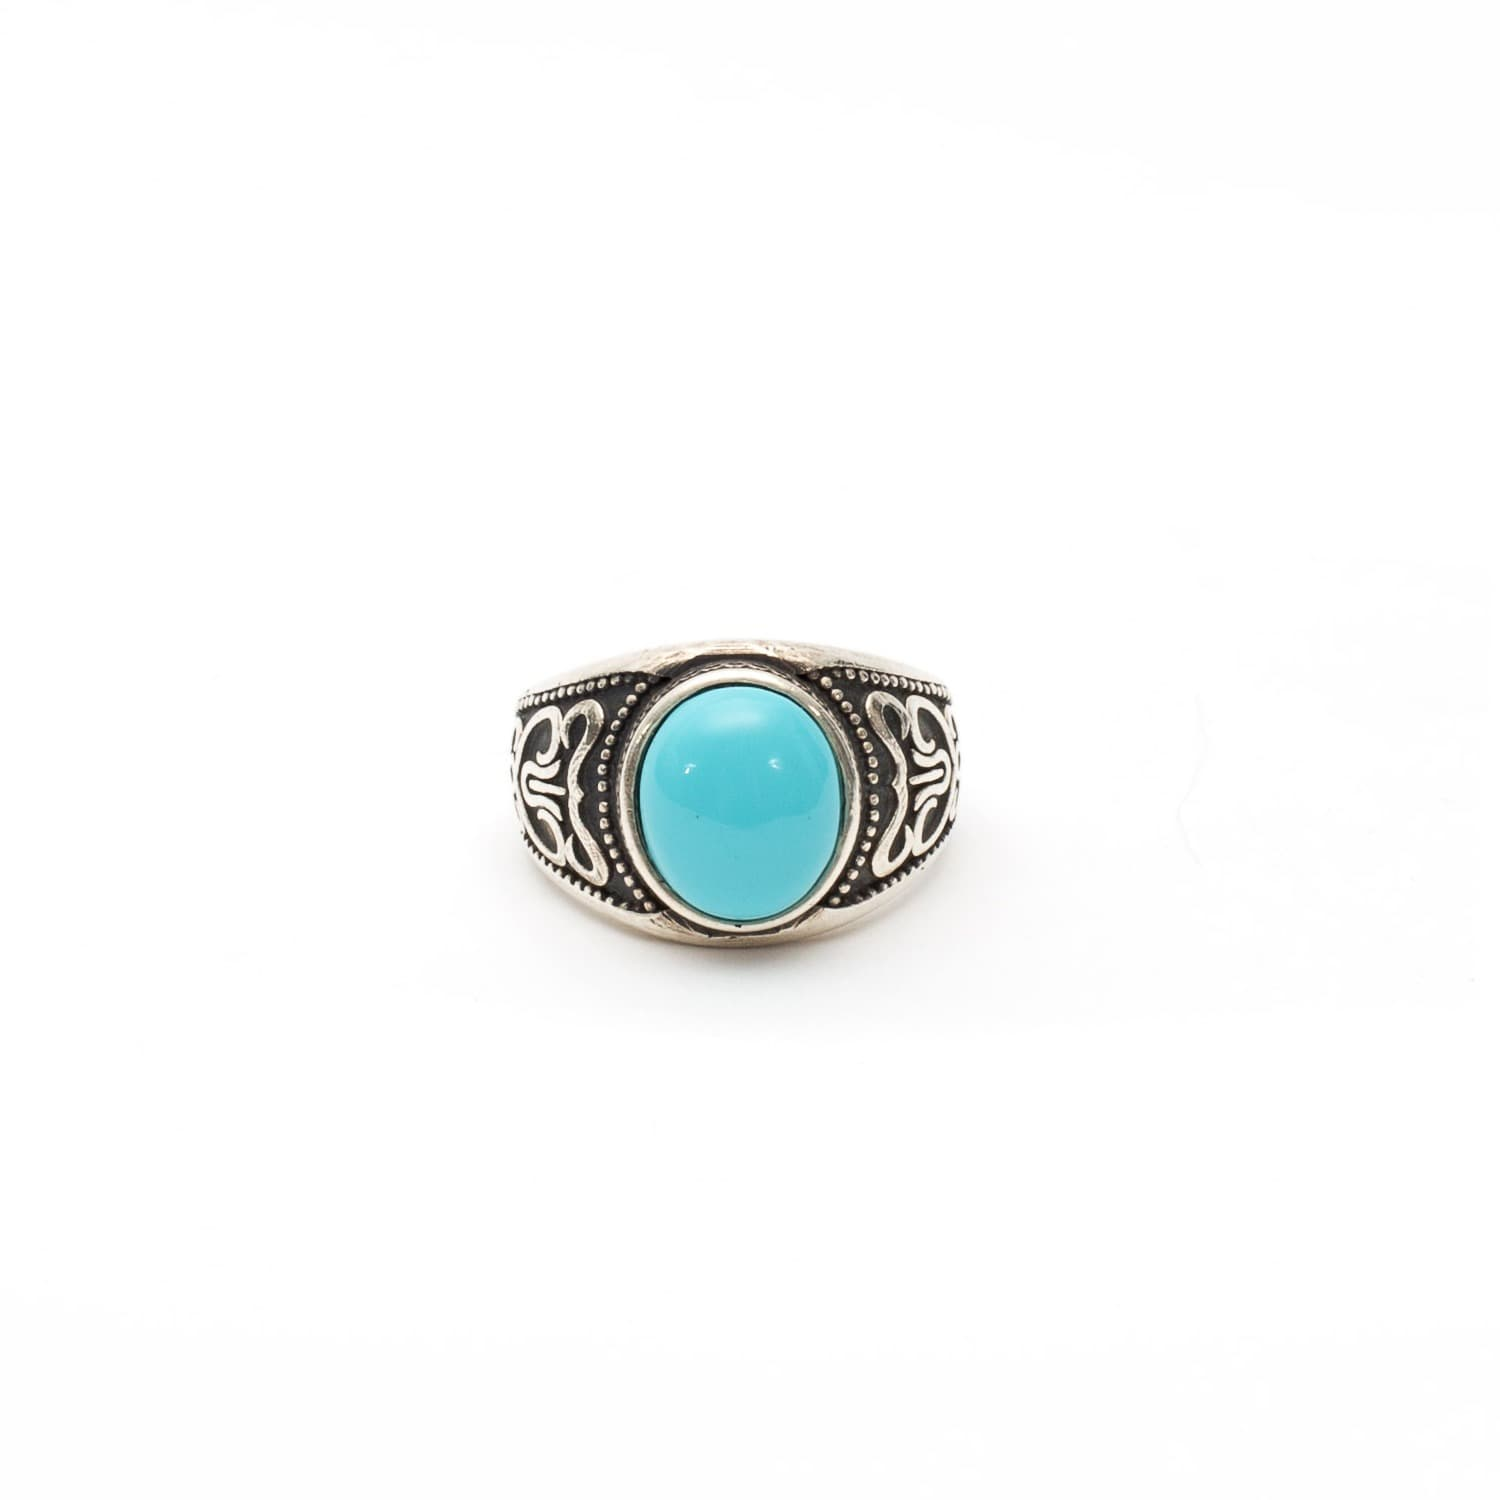 12be71294dafb Silver Turquoise Stone Ring by Serge DeNimes